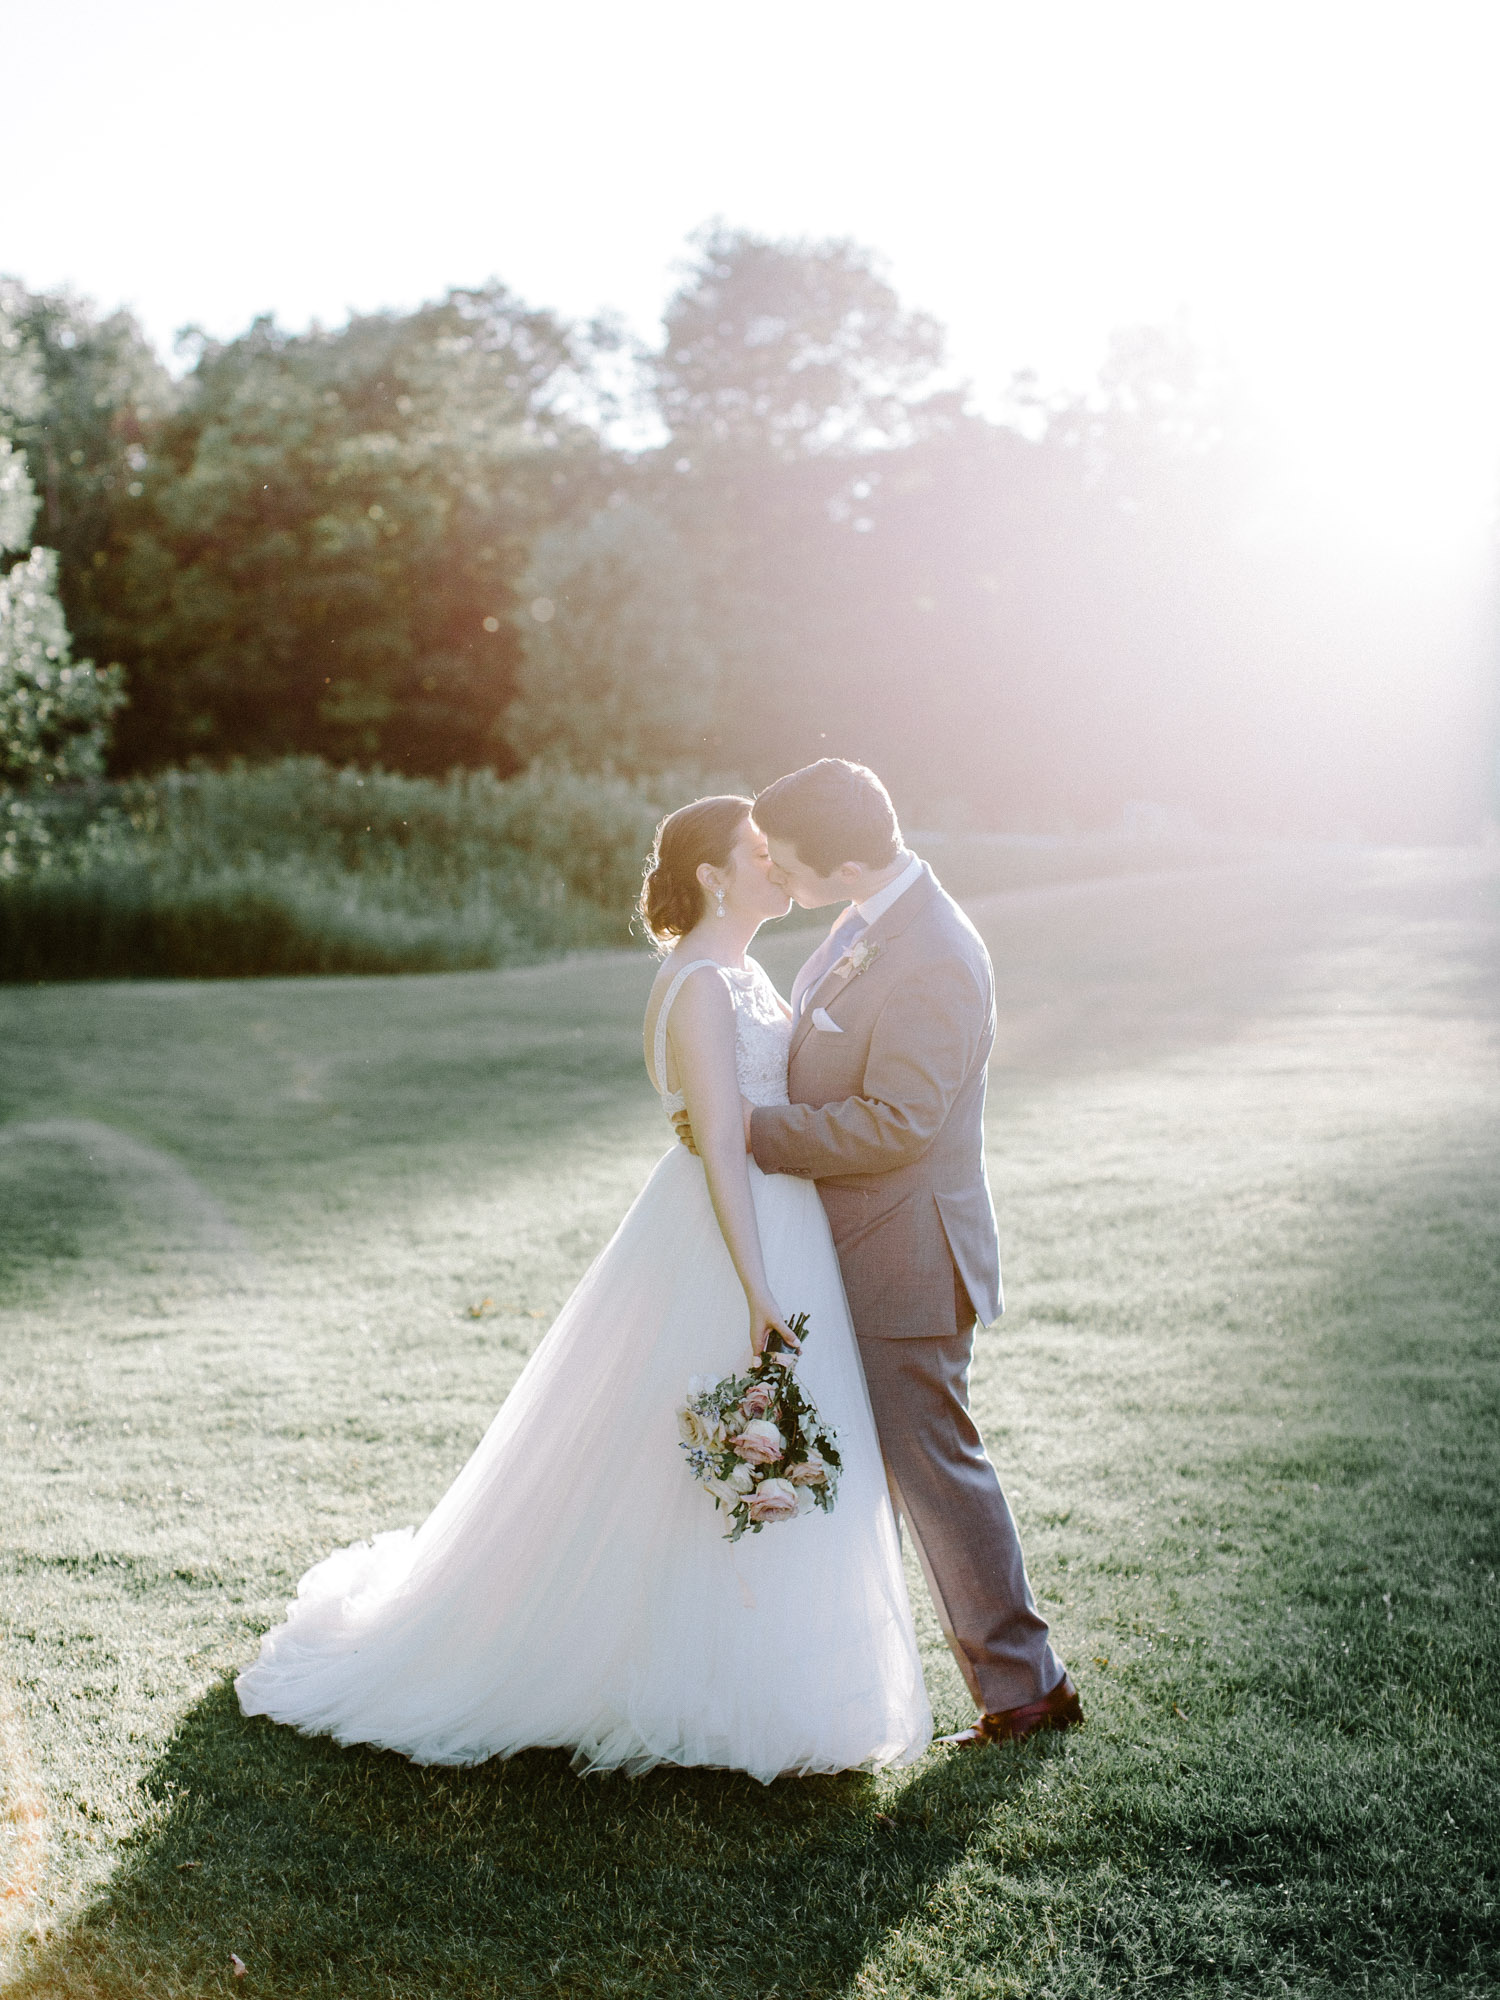 A bride and groom share a kiss in golden hour light at The Polo Fields wedding venue in Ann Arbor